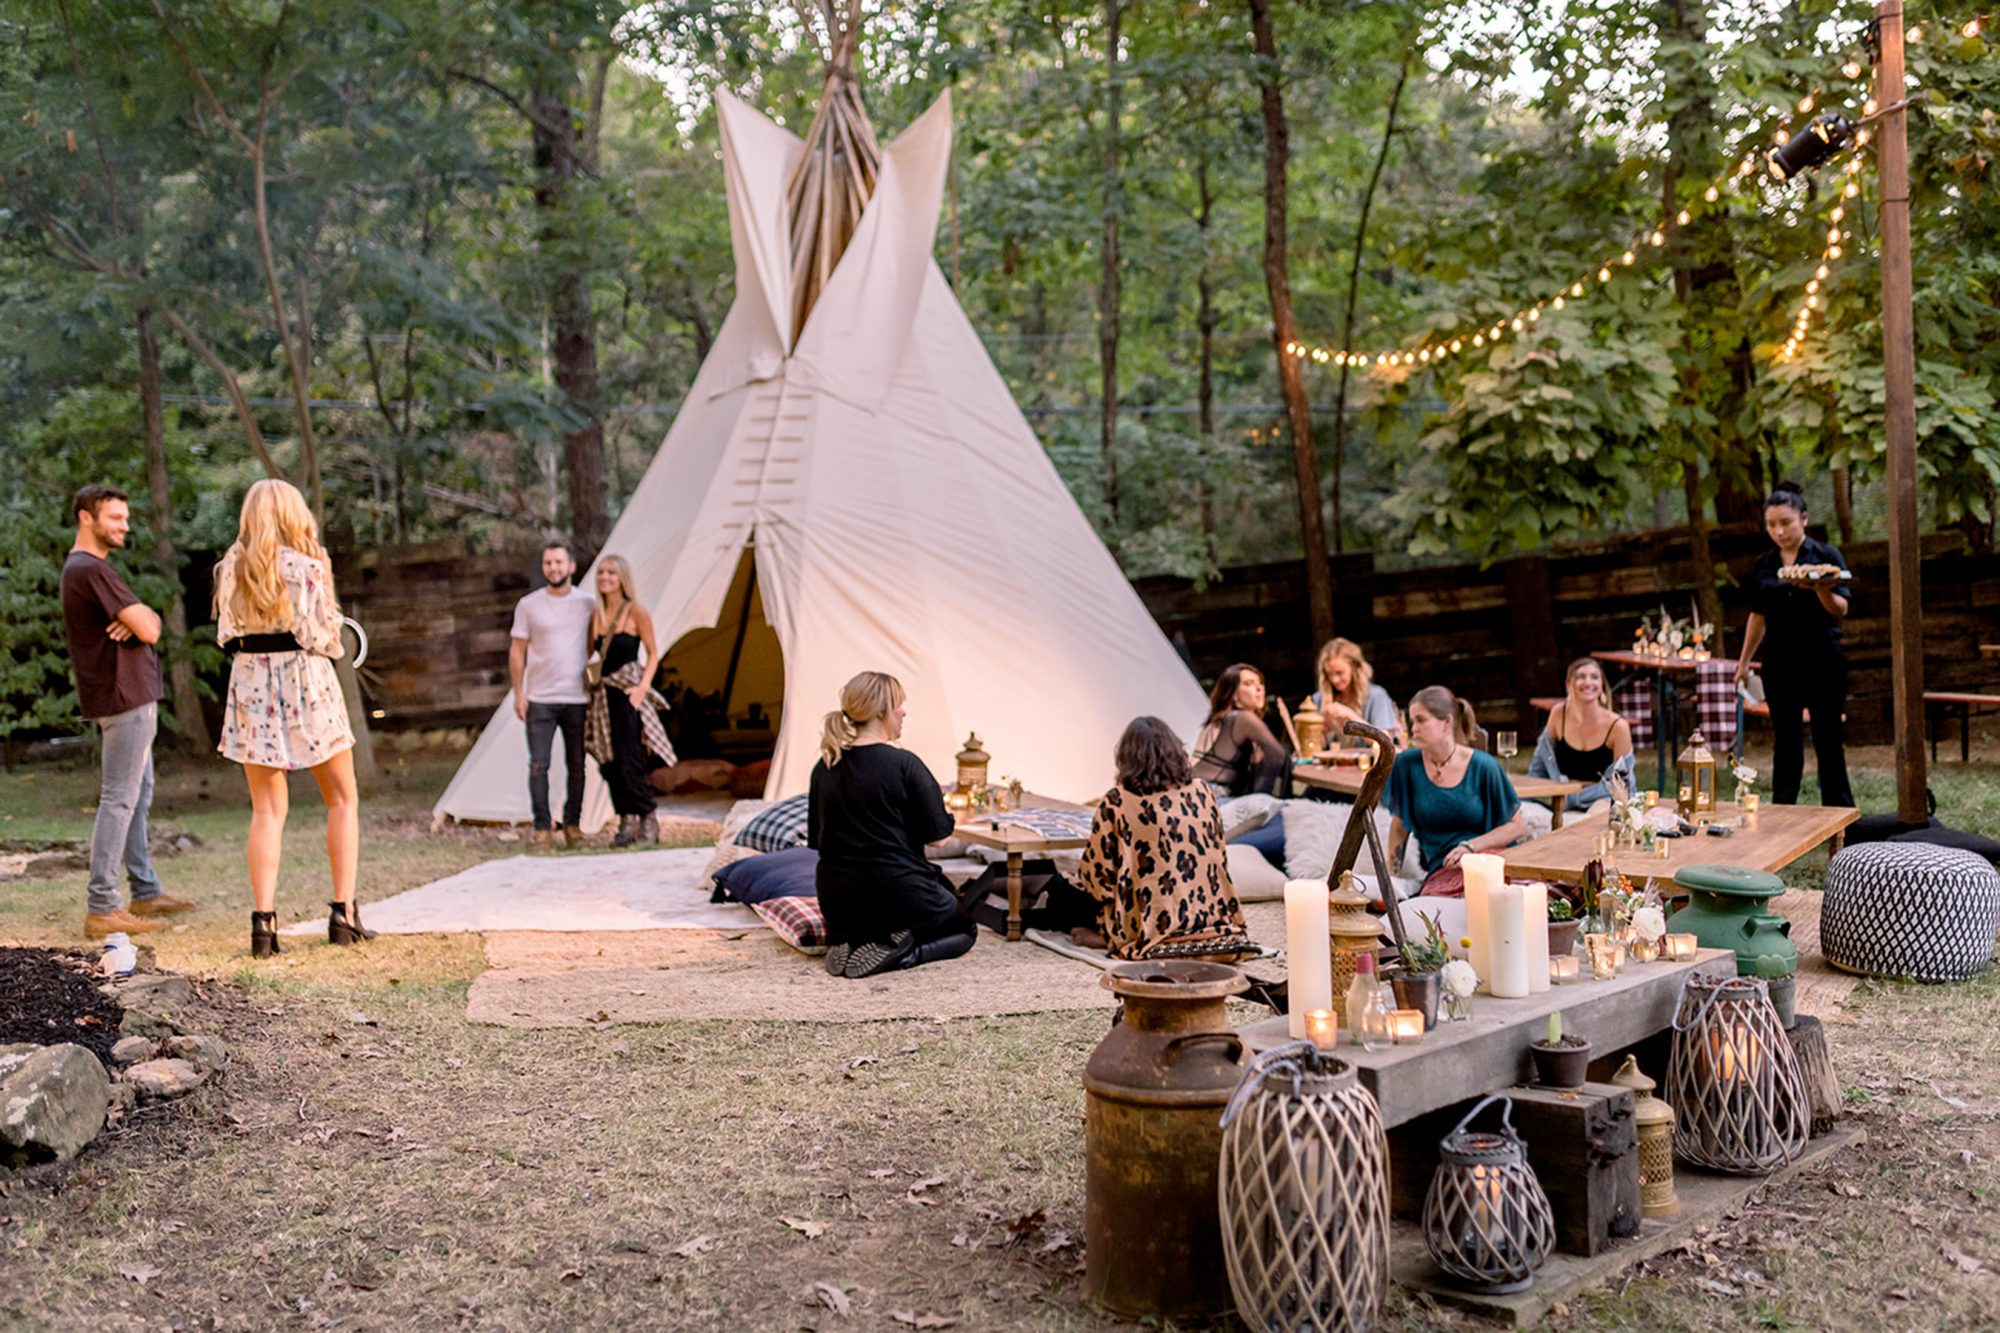 Tribe Kelley Celebration For Brand New Hunt Club Collection on October 01, 2019 in Nashville, Tennessee.